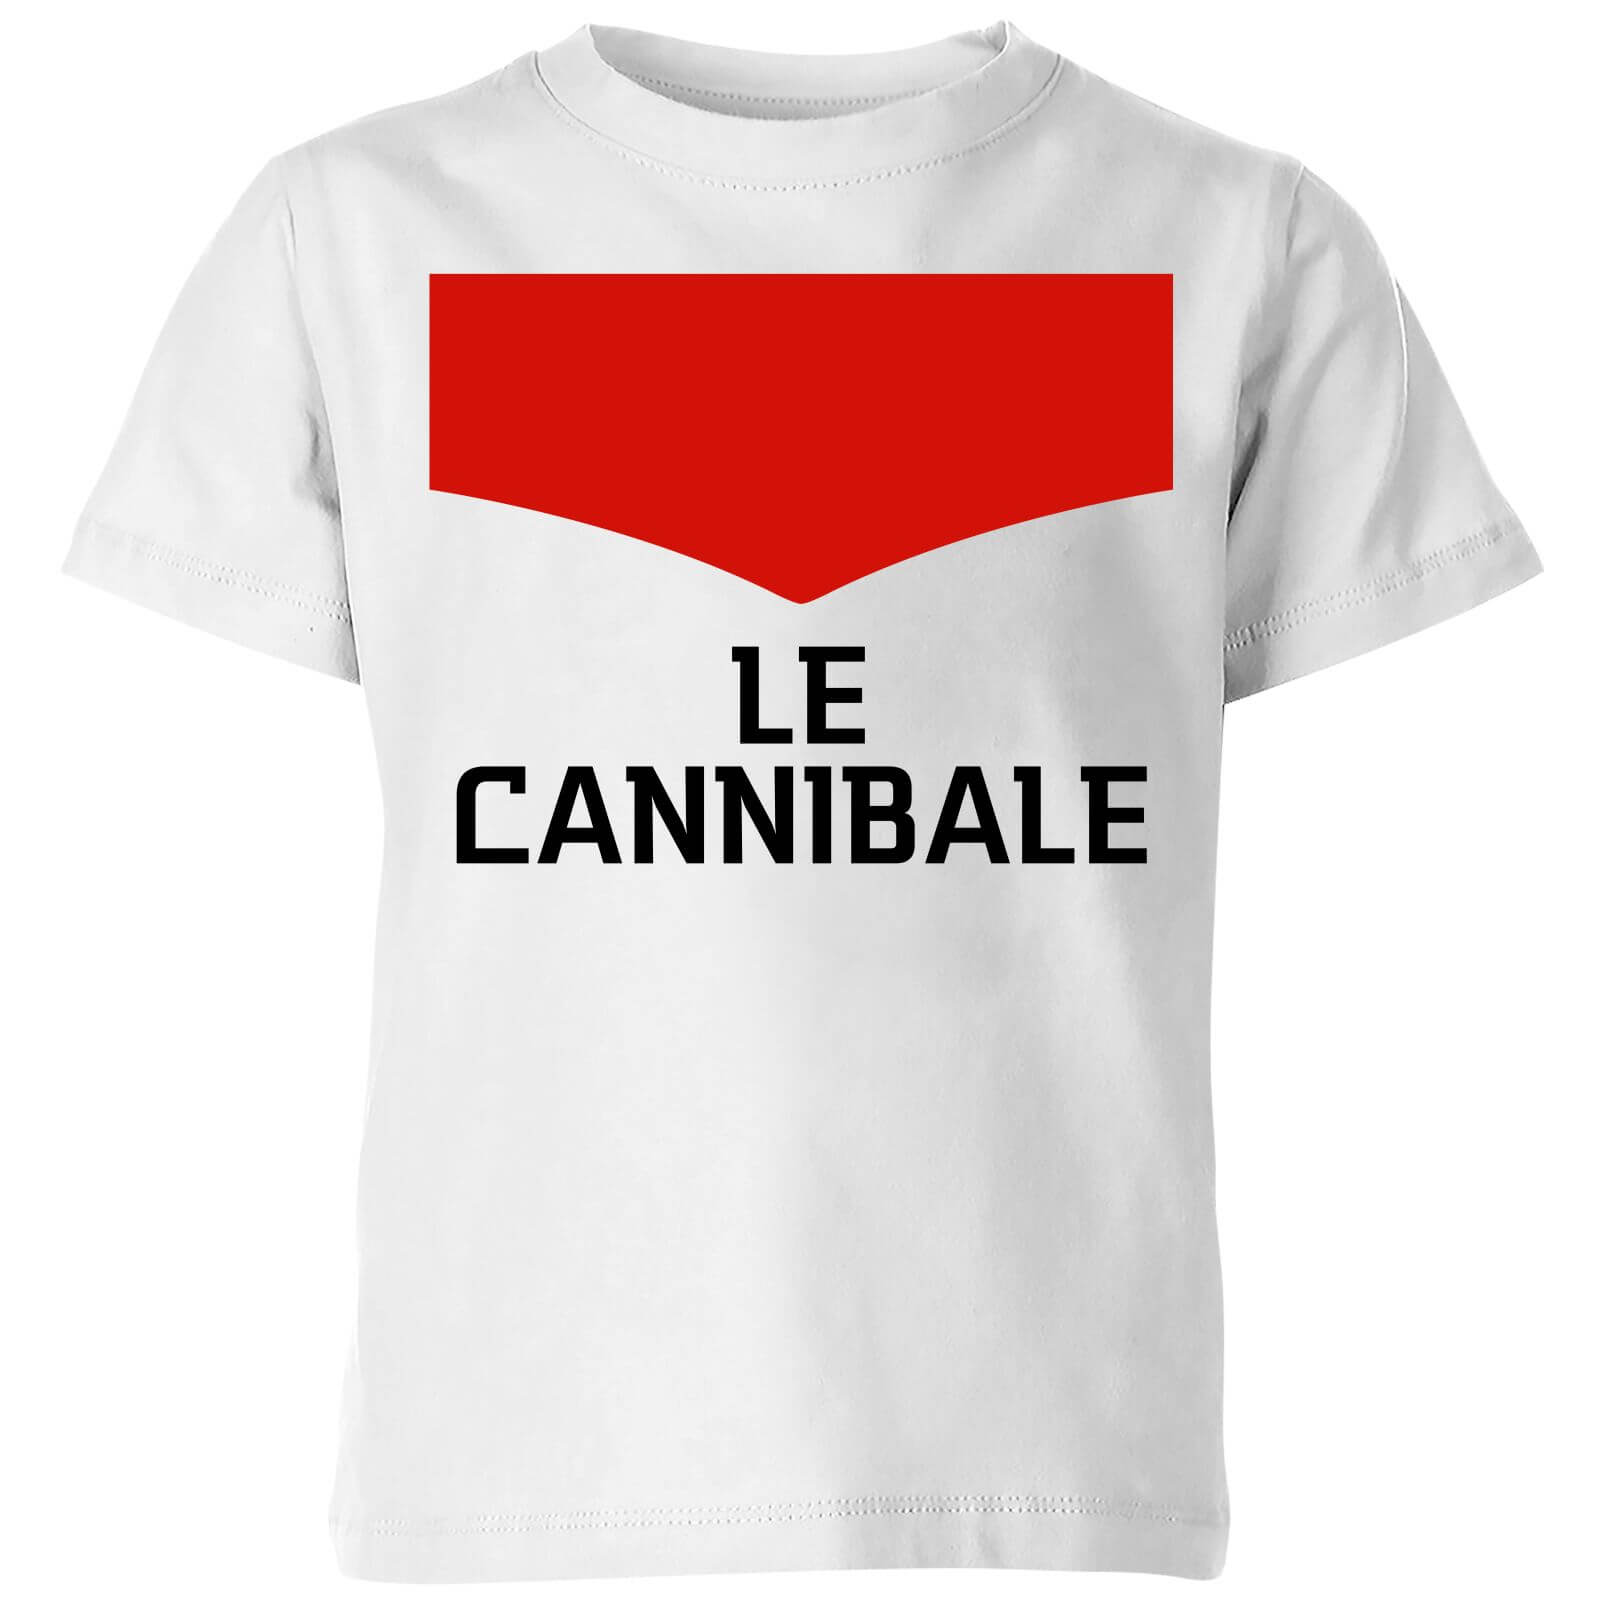 Summit Finish Le Cannibale Kids' T-Shirt - White - 11-12 Years - White